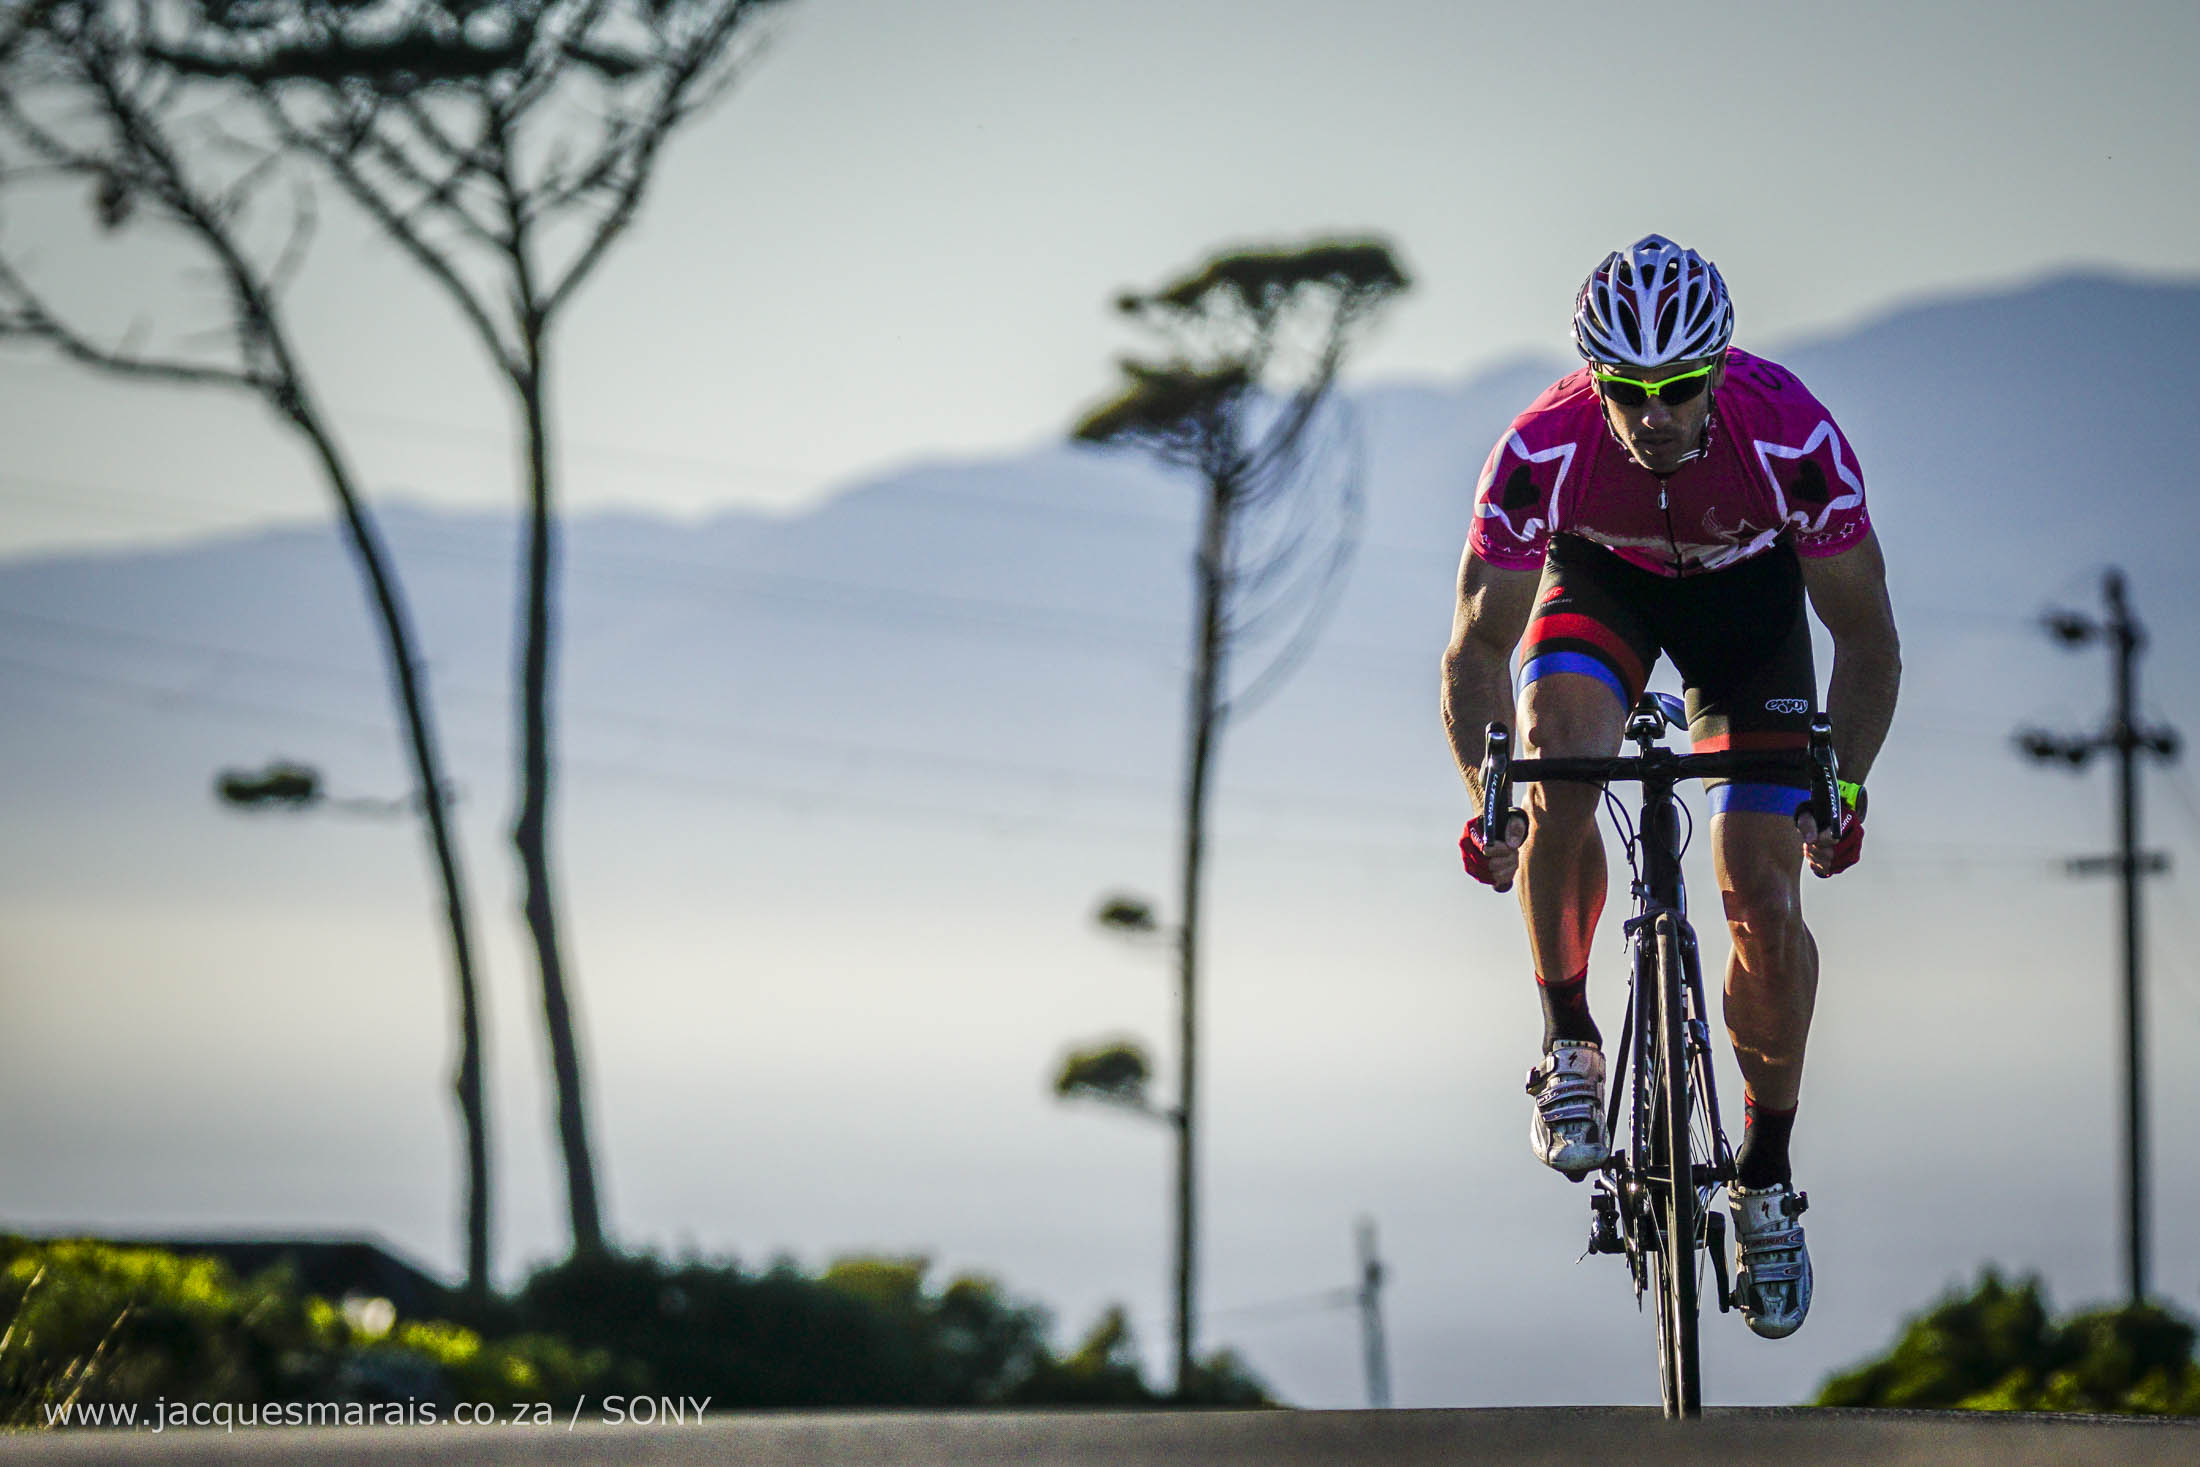 Jamie Marais > Sani Pass 12 hour record attempt 1